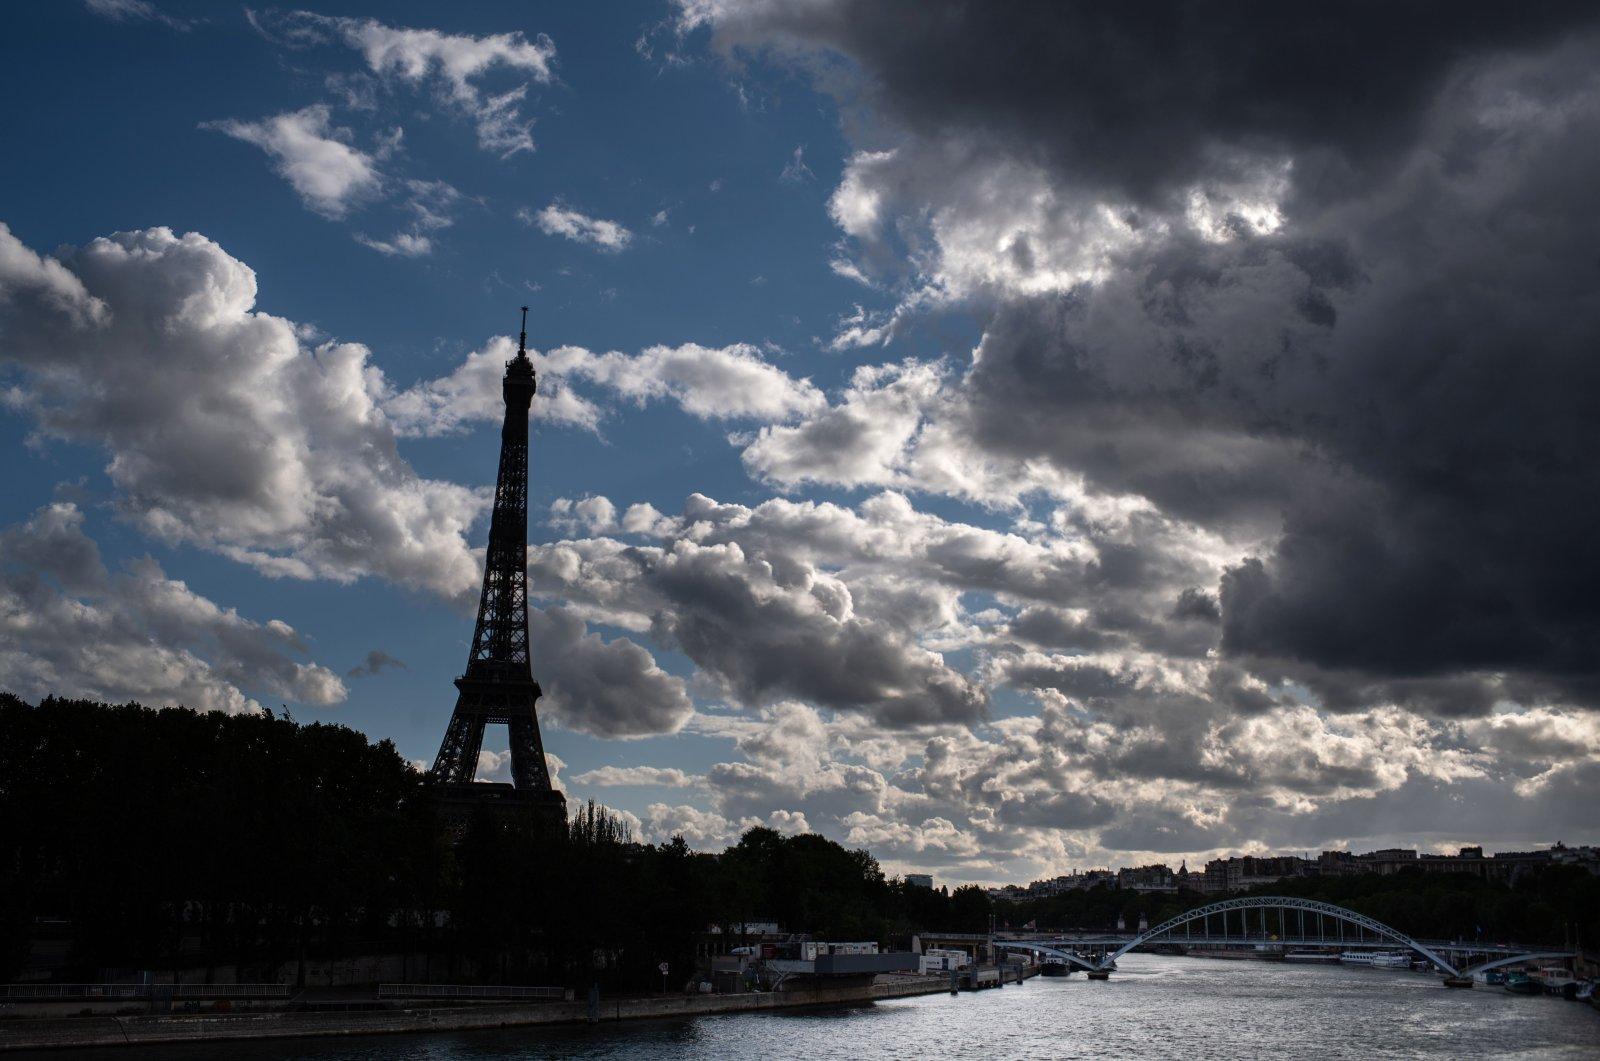 Seine river and the Eiffel Tower on a cloudy day on Labour Day (May Day) in Paris, on the 46th day of a lockdown aimed at curbing the spread of the COVID-19 pandemic, caused by the novel coronavirus on May 1, 2020. (AFP Photo)